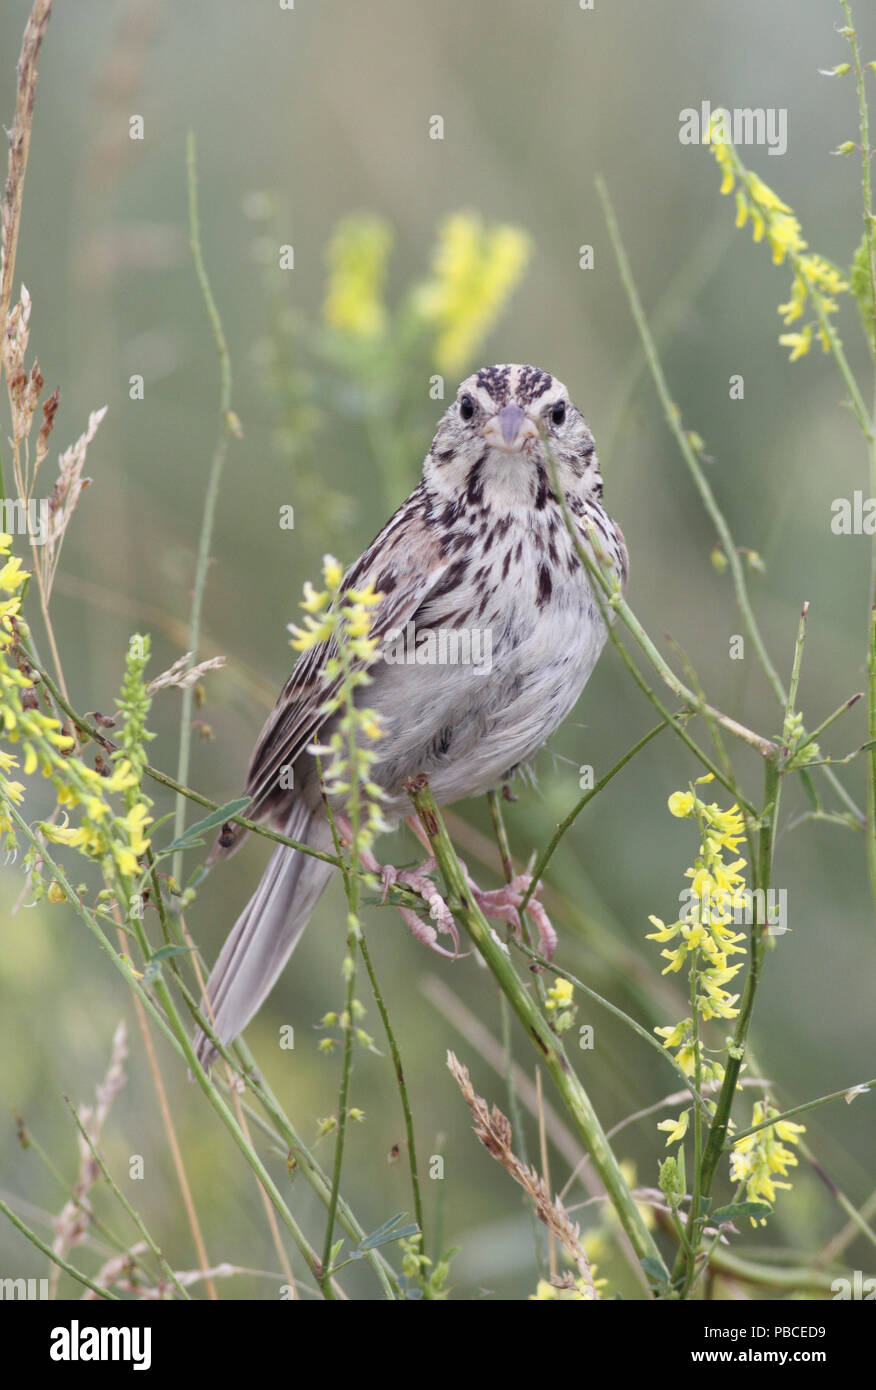 Baird's Sparrow July 23rd, 2011 Grand River National Grasslands, Perkins County, SD Canon 50D, 400 5.6L - Stock Image